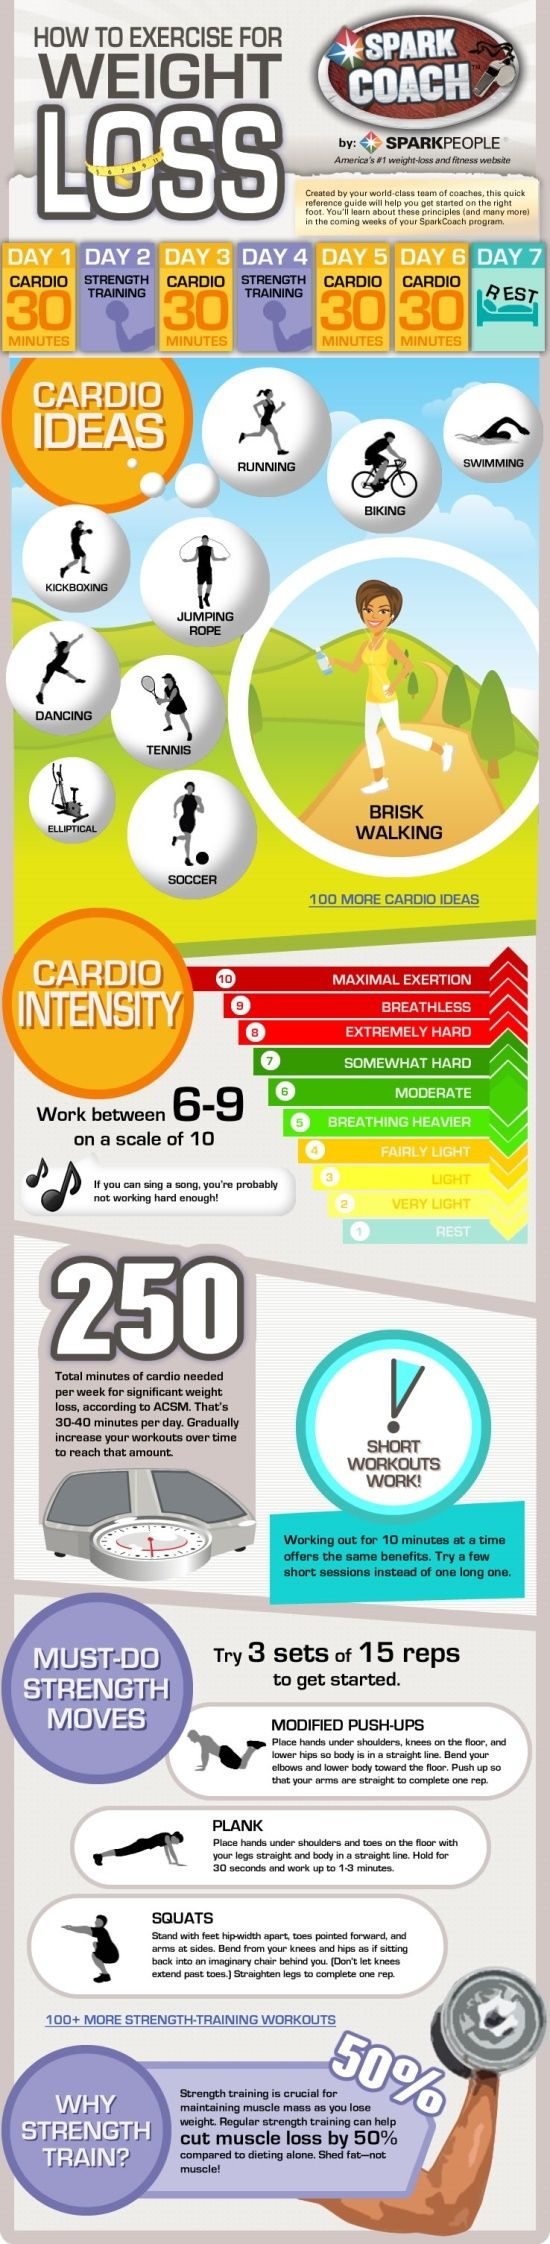 How to exercise for weight loss Download Report Now ➨ http://loseitwomen.com/WOW-incom.zip